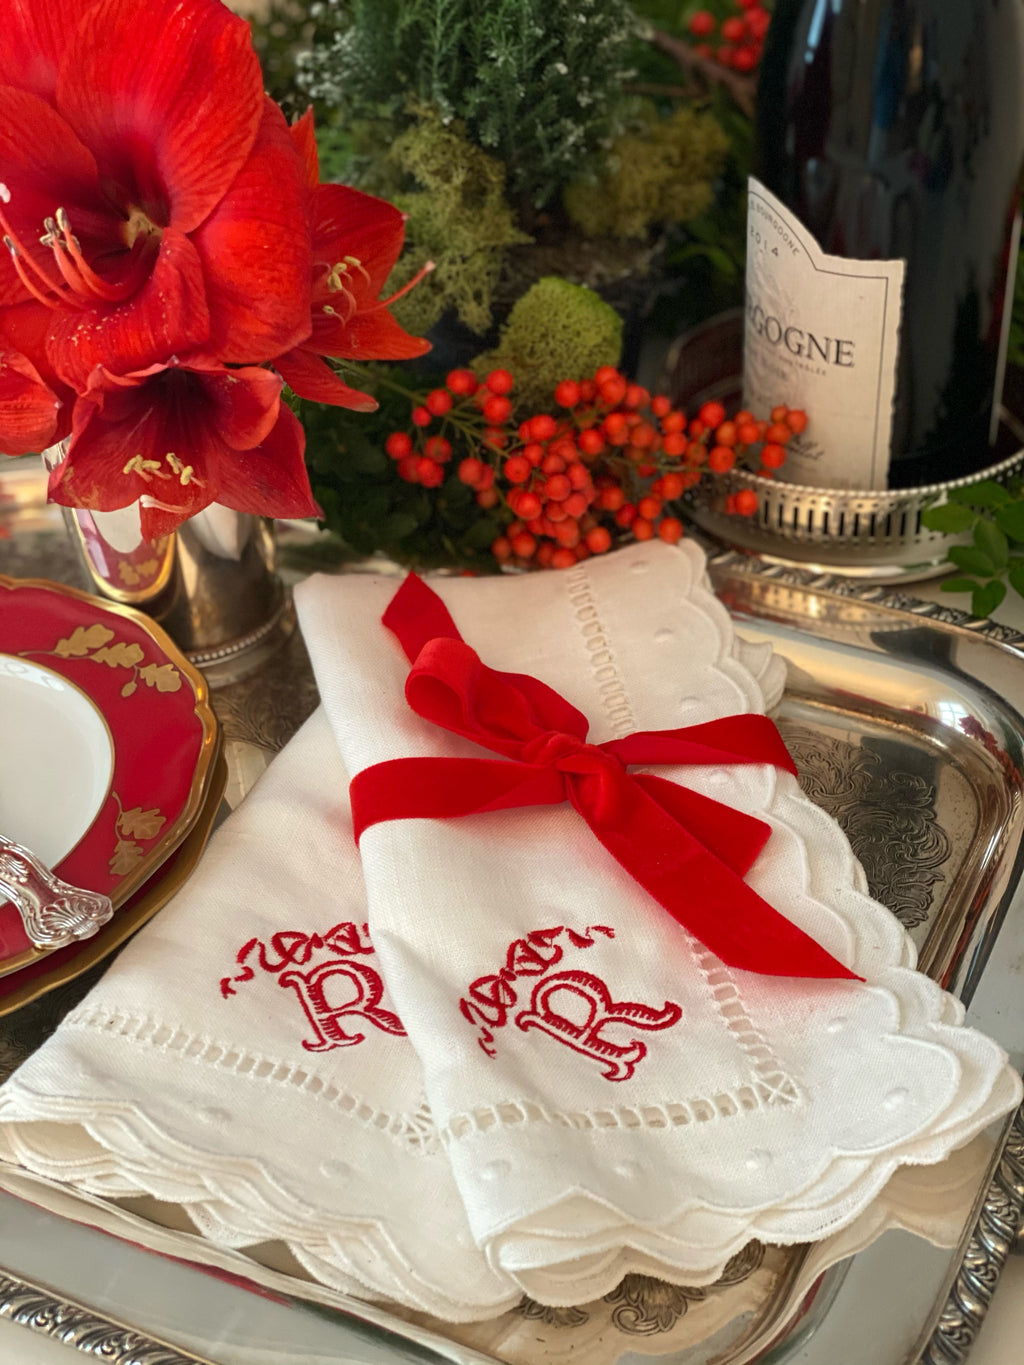 Red Bow and Initial Embroidered Napkins